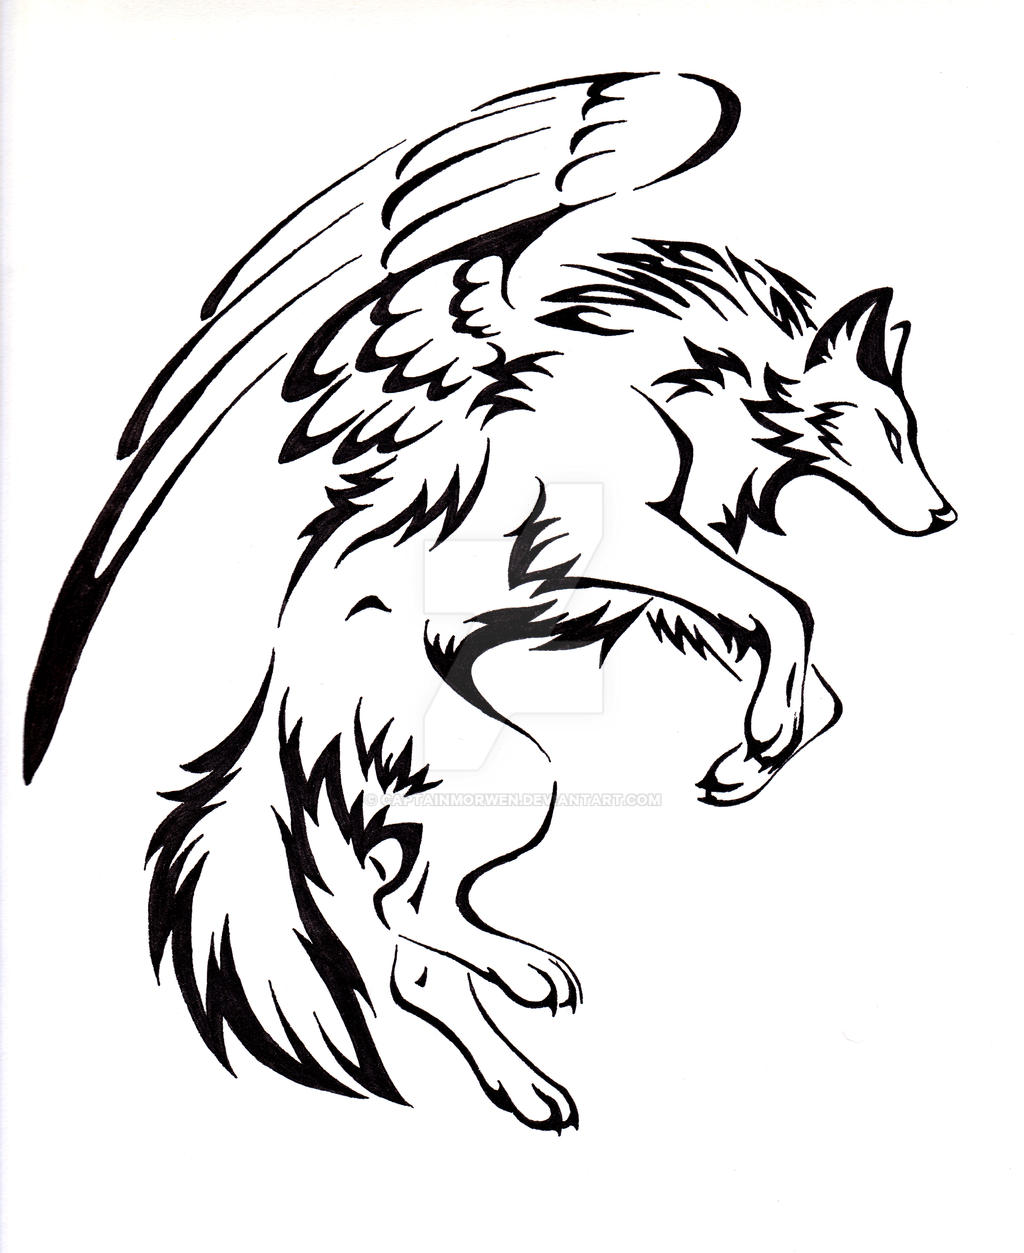 Courage Winged Wolf Tattoo by CaptainMorwen on DeviantArt